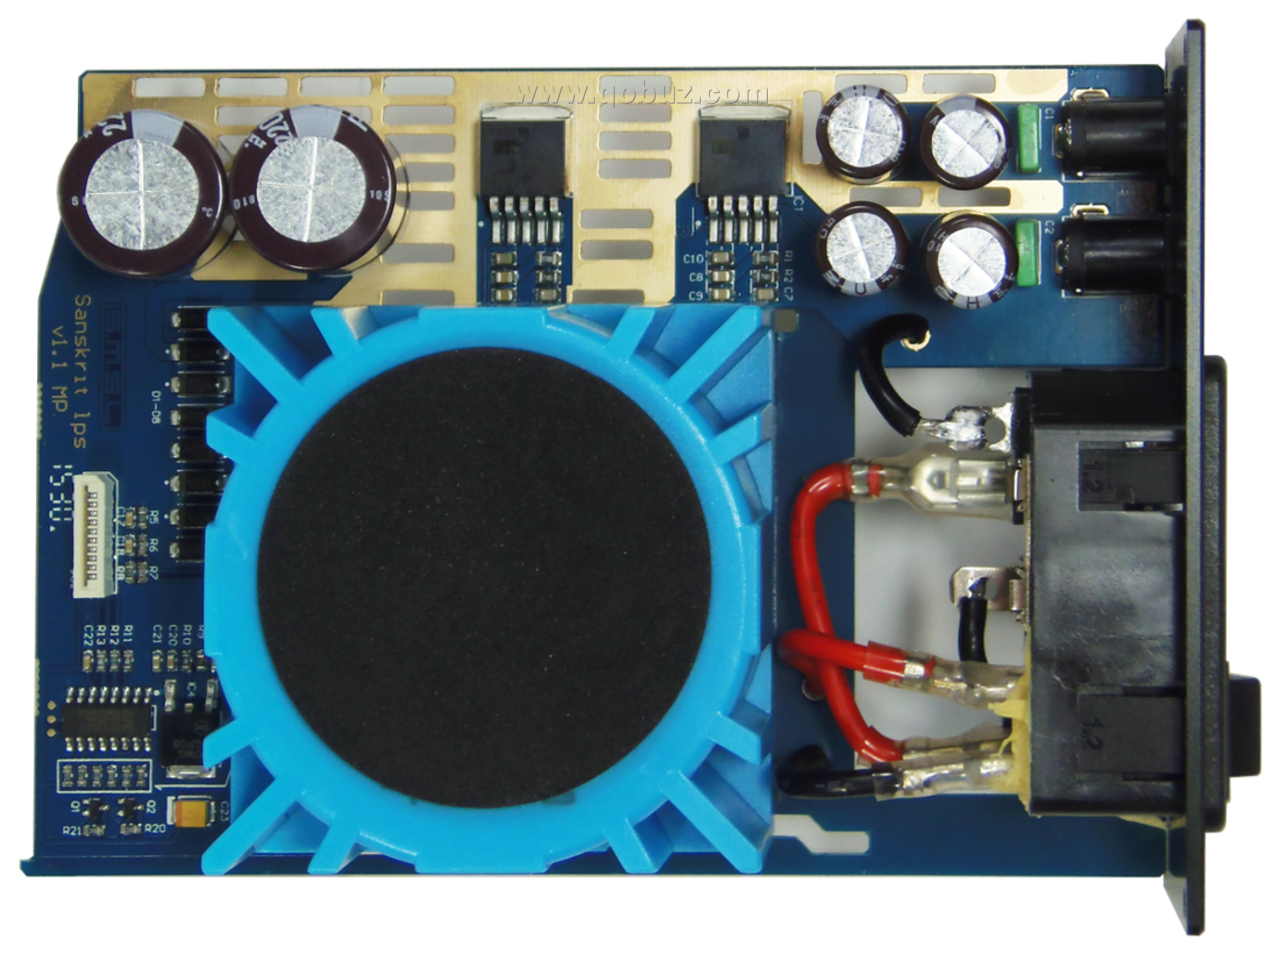 Smsl Panda System The Power Of Separation But Unity In Looking For A Red Laser Diode Circuit Controlablelm317components01 This Transformer Has Two Independent Secondary Windings Each Which Is Rectified By Four Schottky Ss24t3g Diodes Holds Current 2